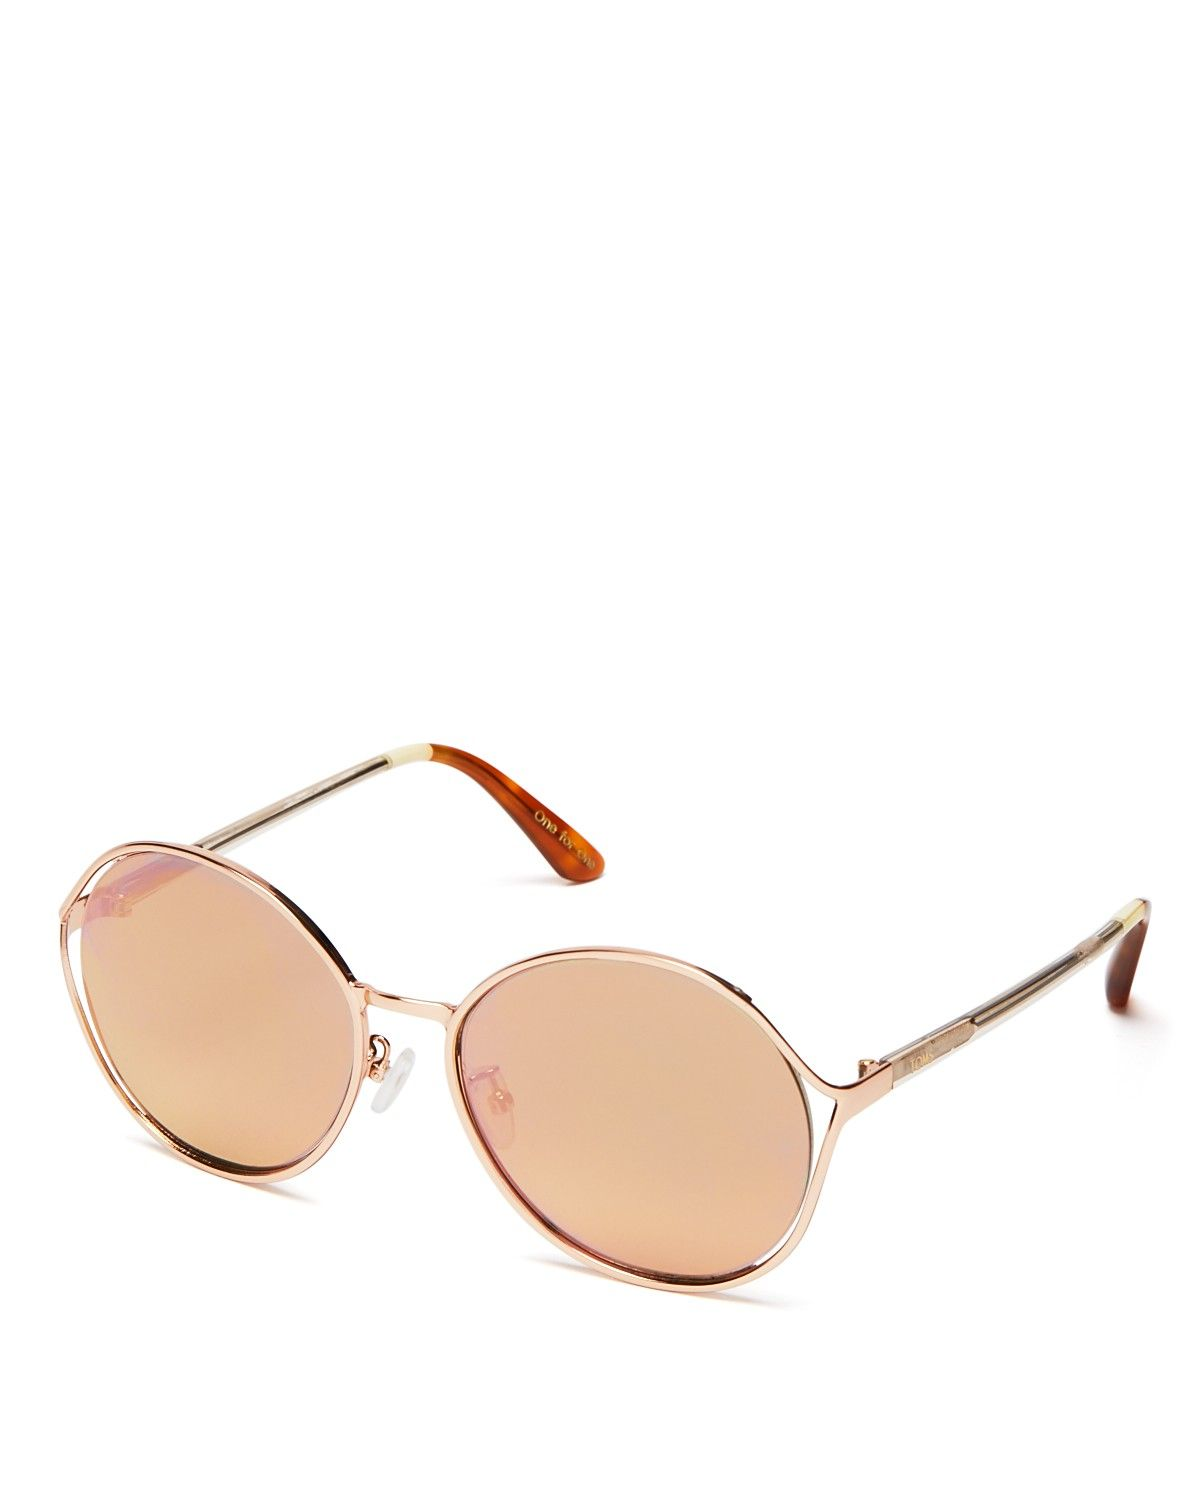 A Pretty Mix Of Round Frames And Rosy Mirrored Lenses Make